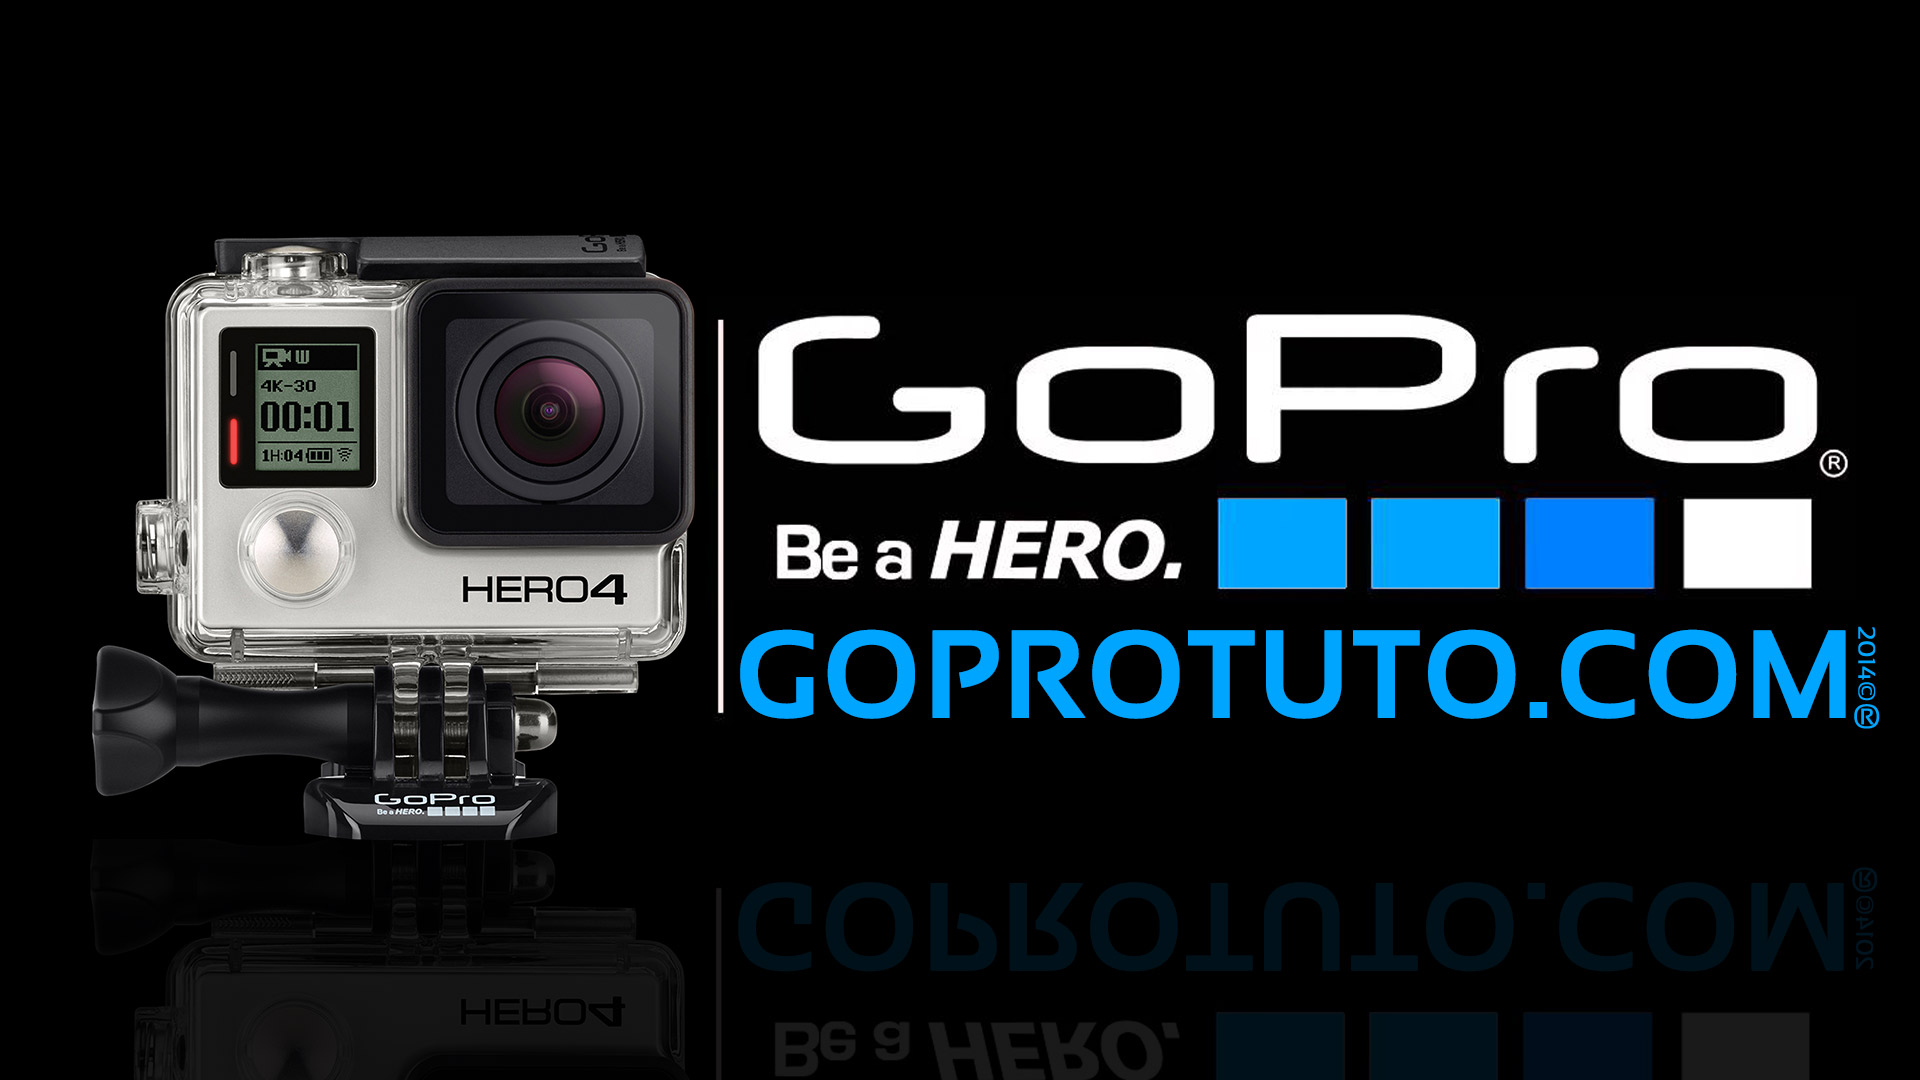 Latest Articles Gopro Tuto Drones Like Dji Mavic Pro Blackout Housing 3rd Party For Hero3 Hero4 Camera Settings Videos And Time Lapse